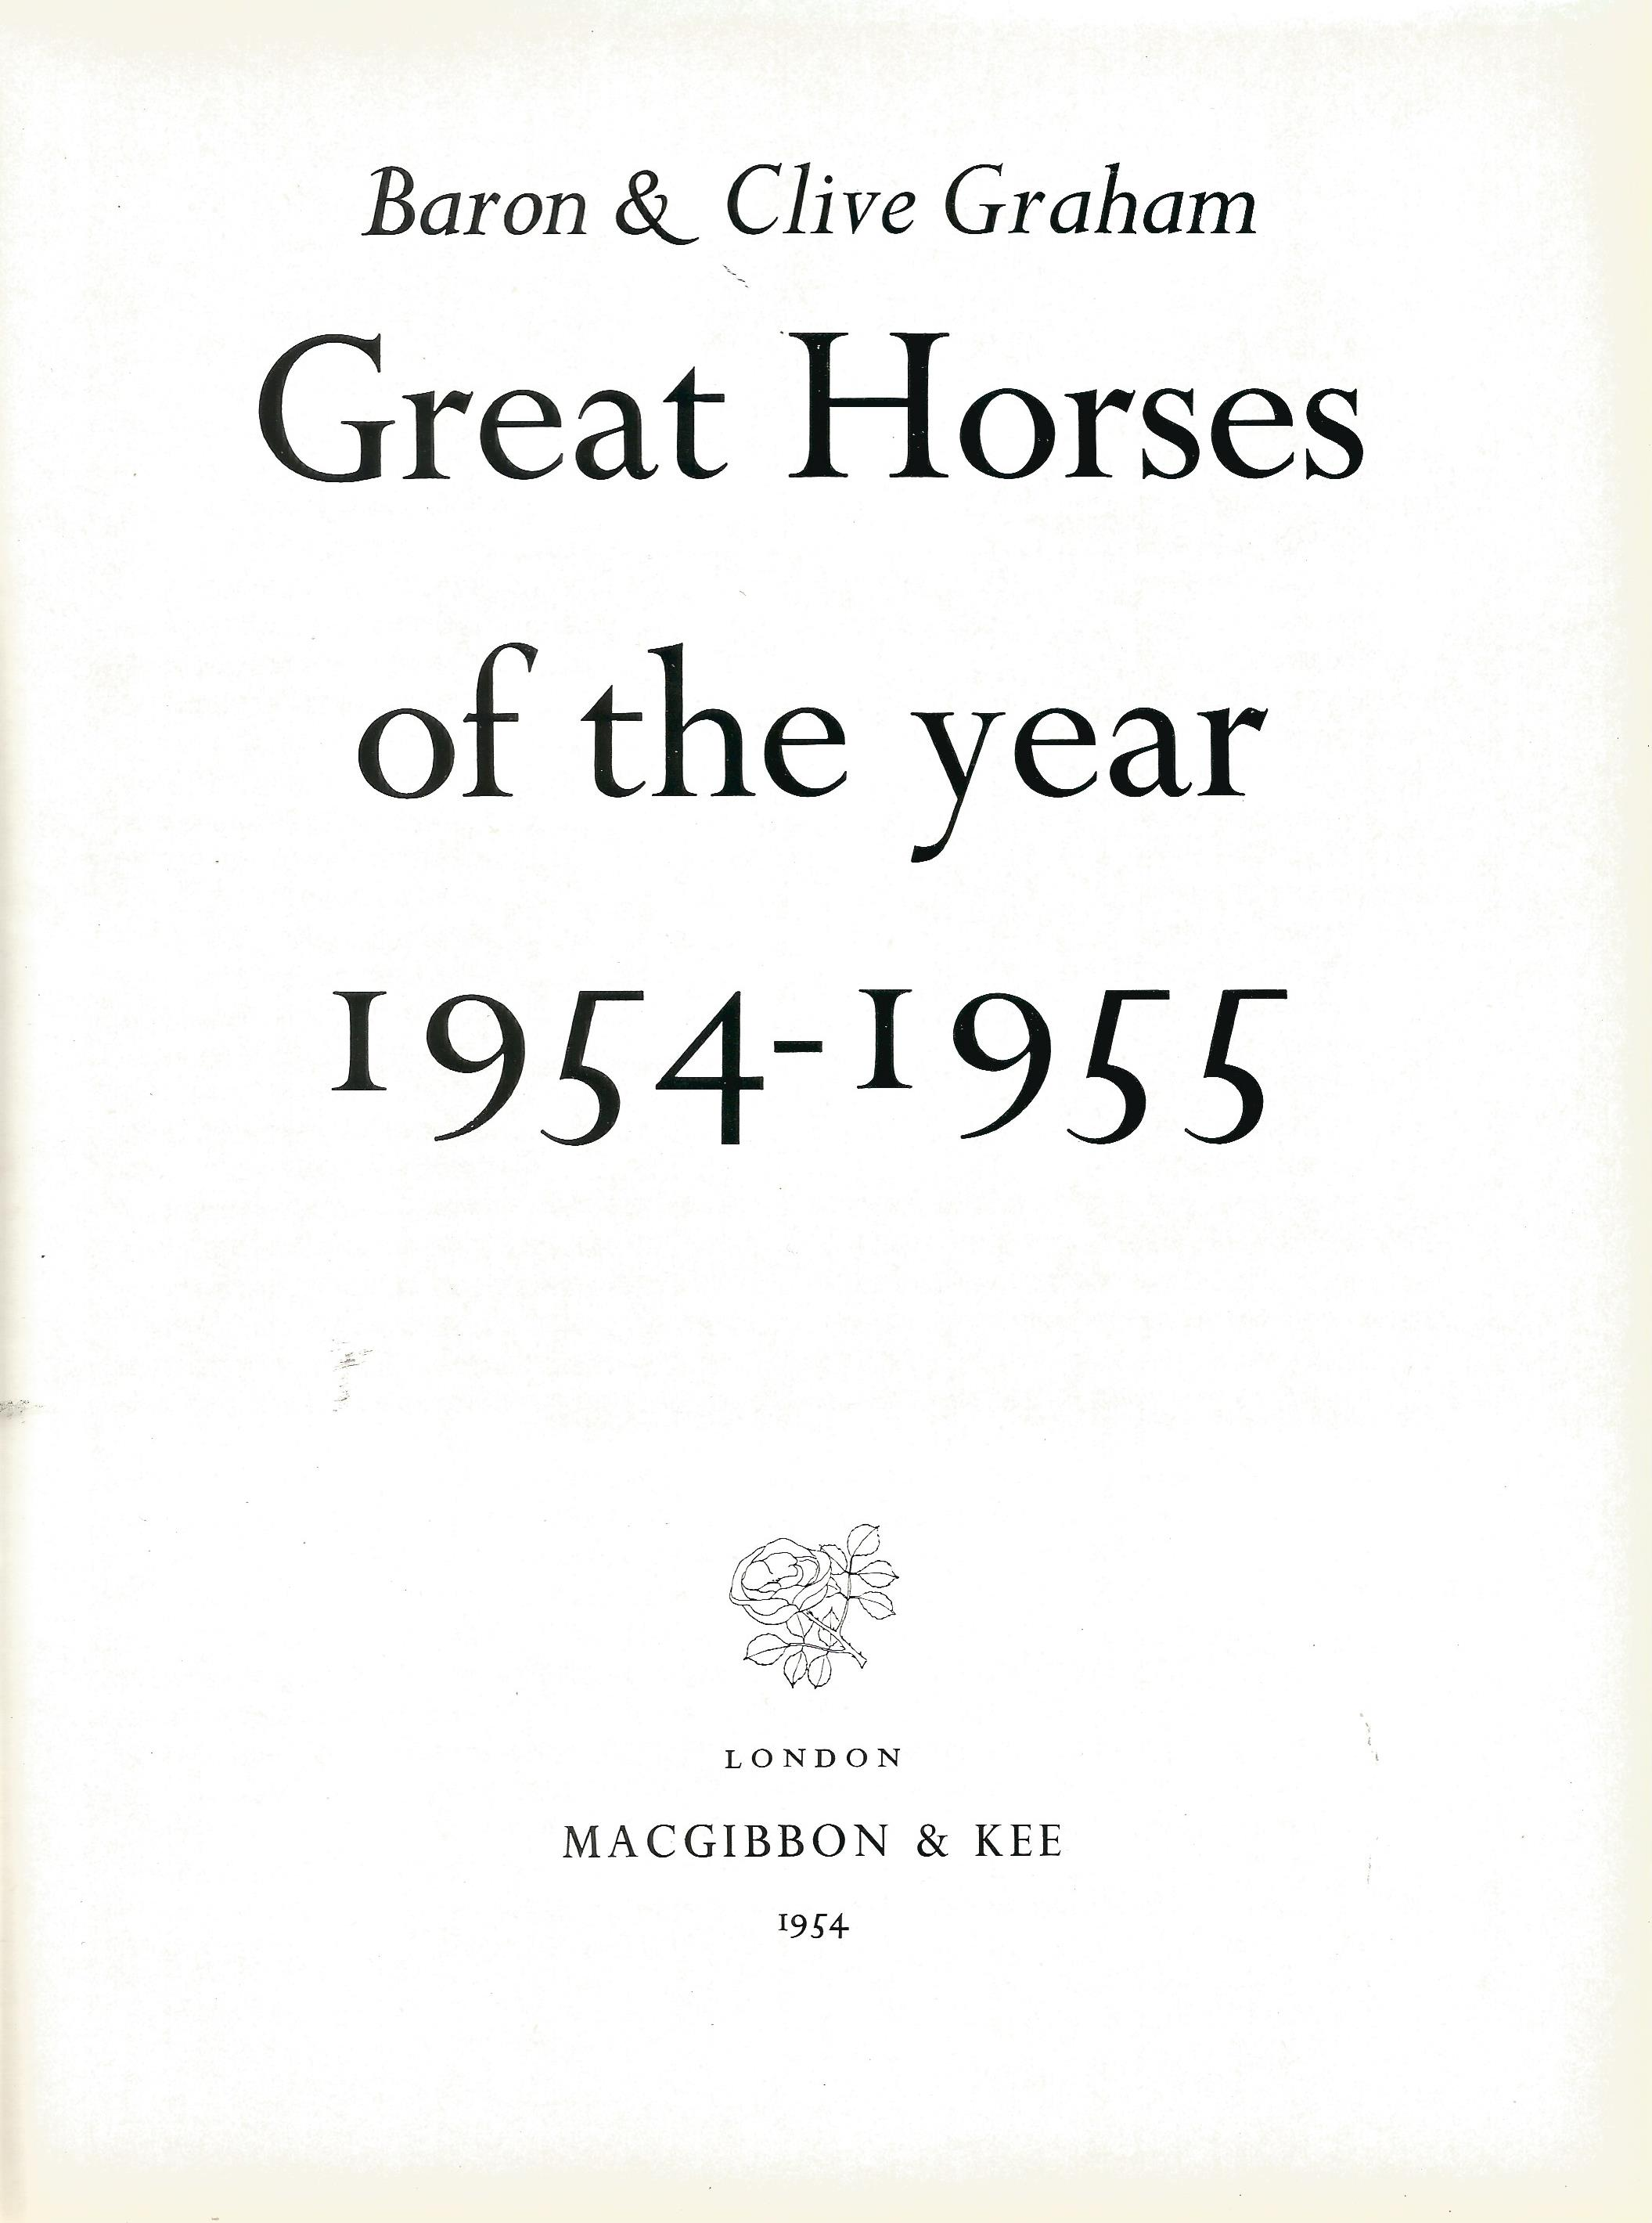 Baron & Clive Graham hardback book Great Horses of the Year 1954 1955 published by Macgibbon & Kee - Image 2 of 2